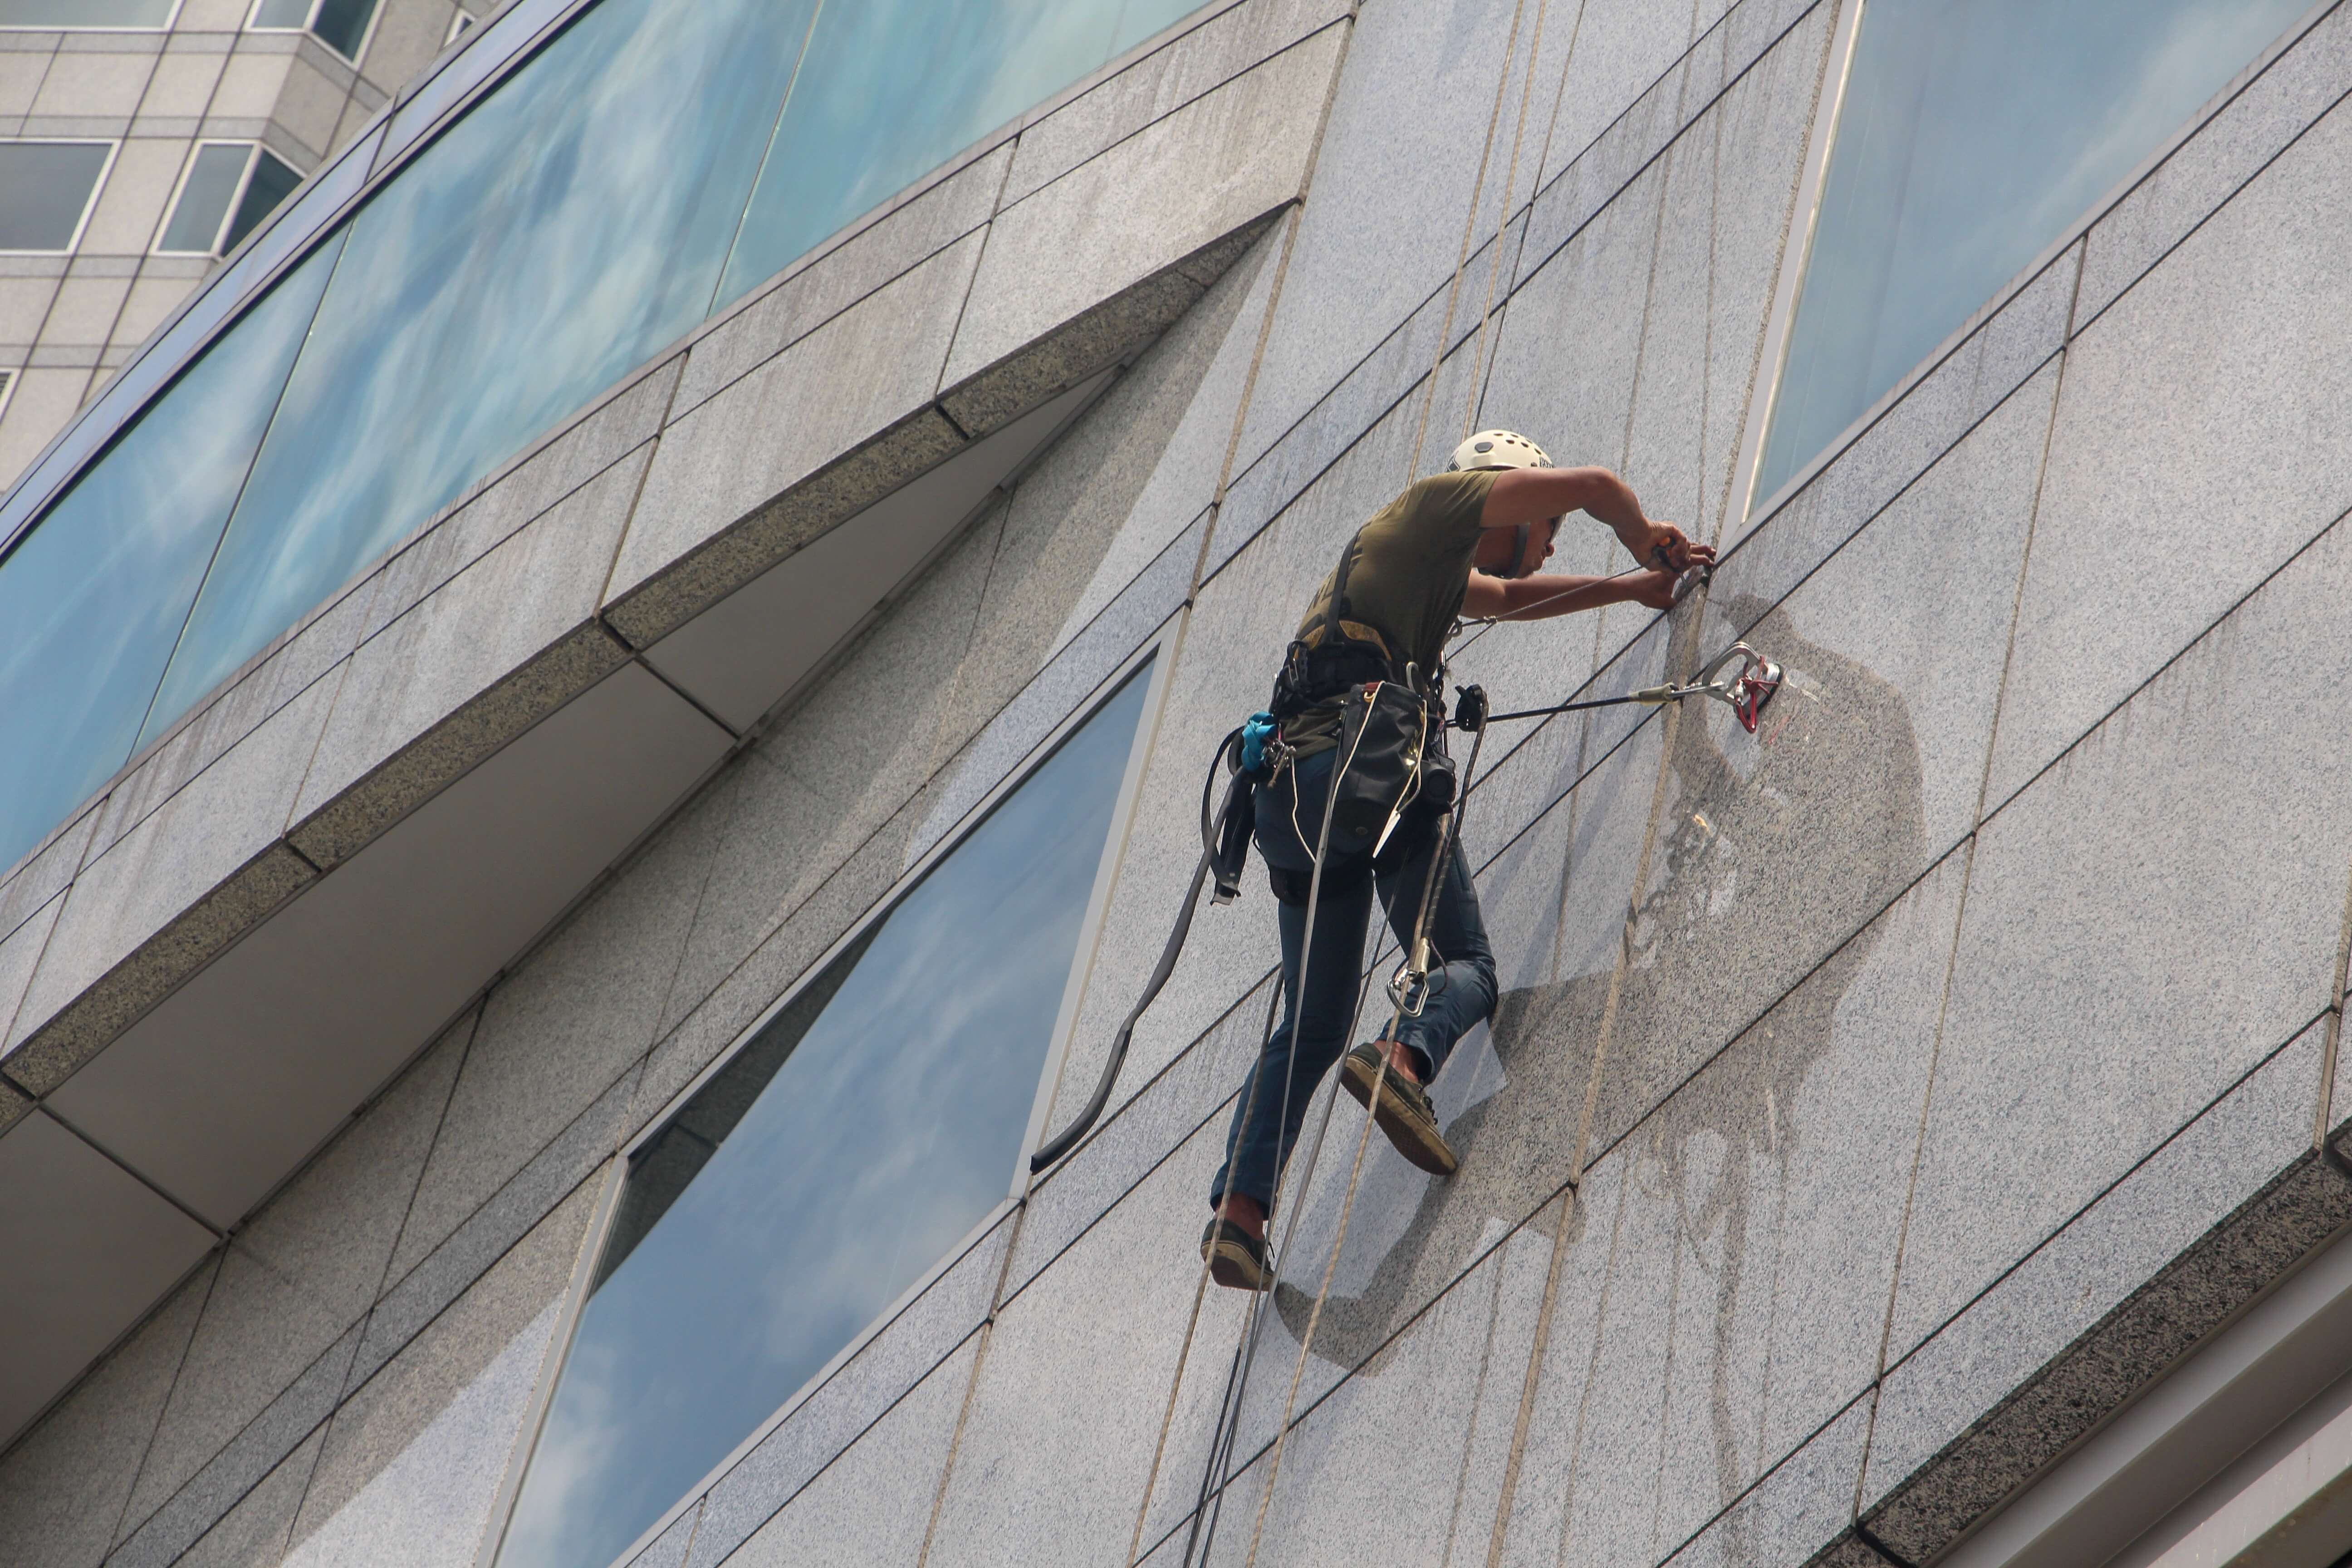 pressure washing in Tampa Bay, window cleaning